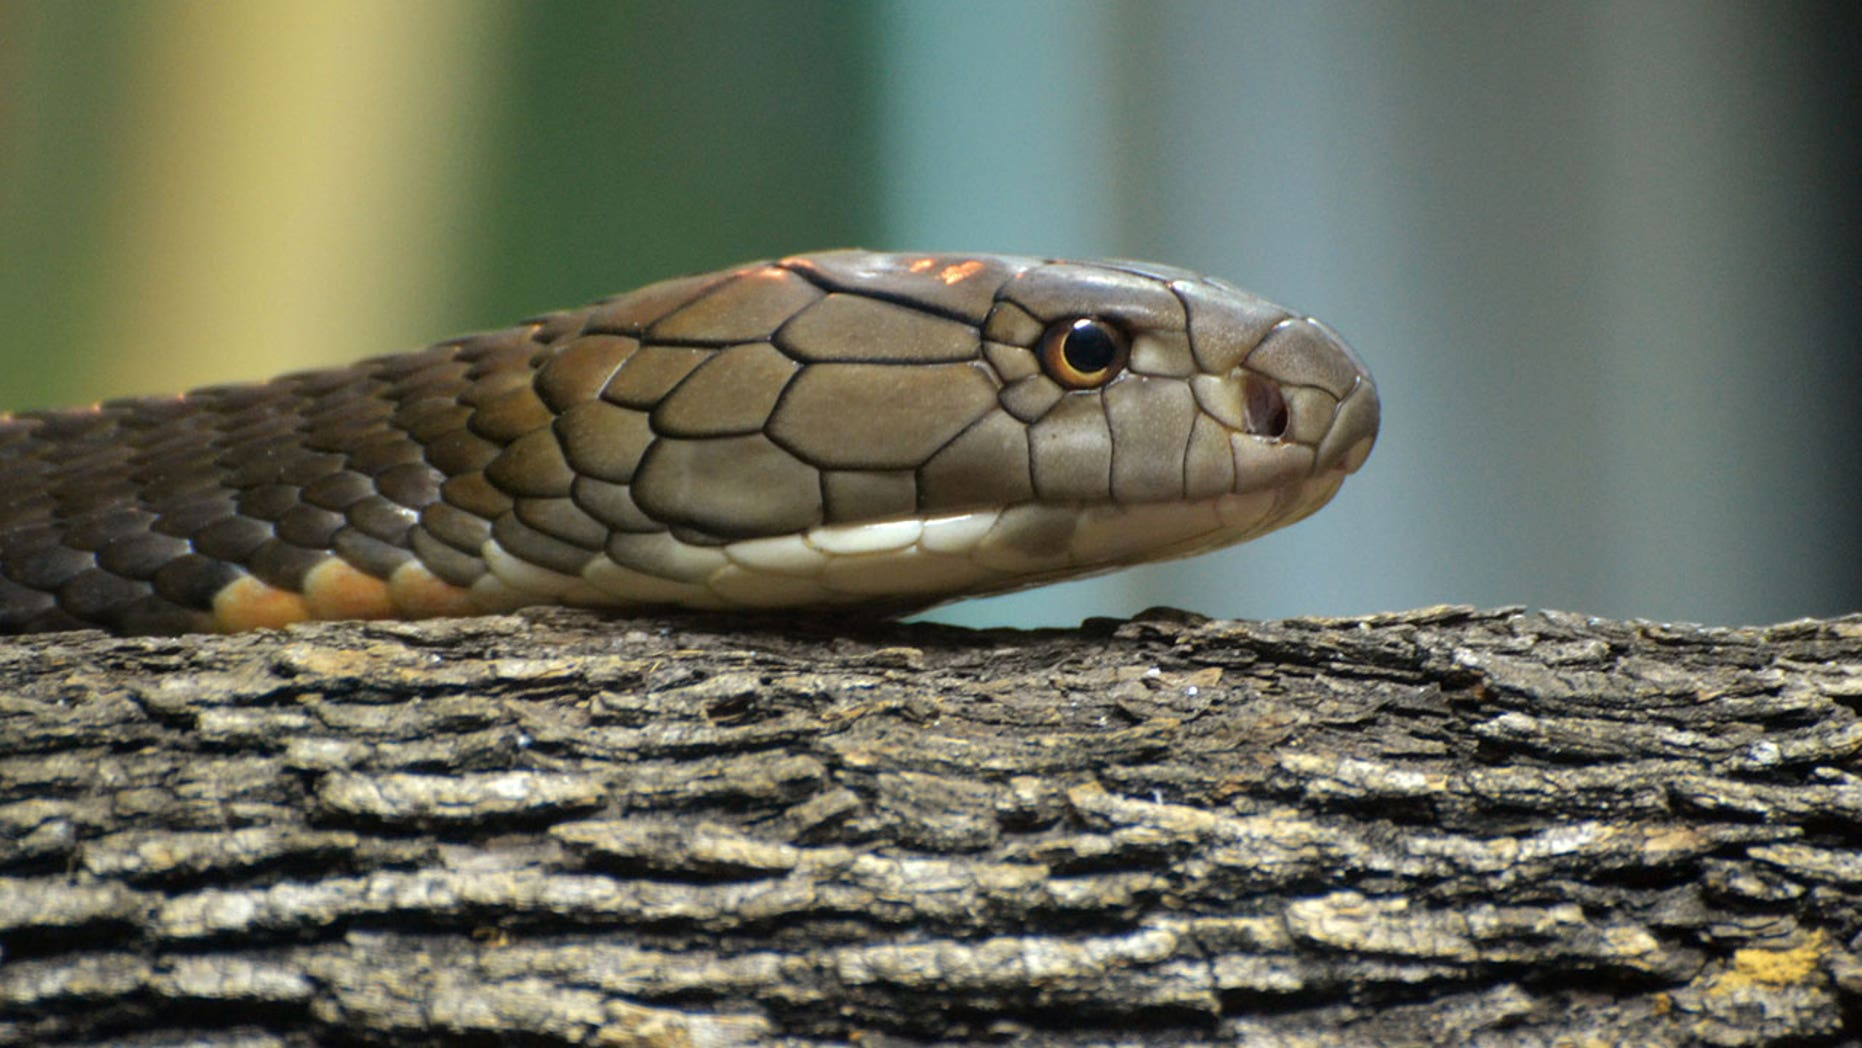 The snakes were found during an X-ray scan of a package at JFK's International Mail Facility.